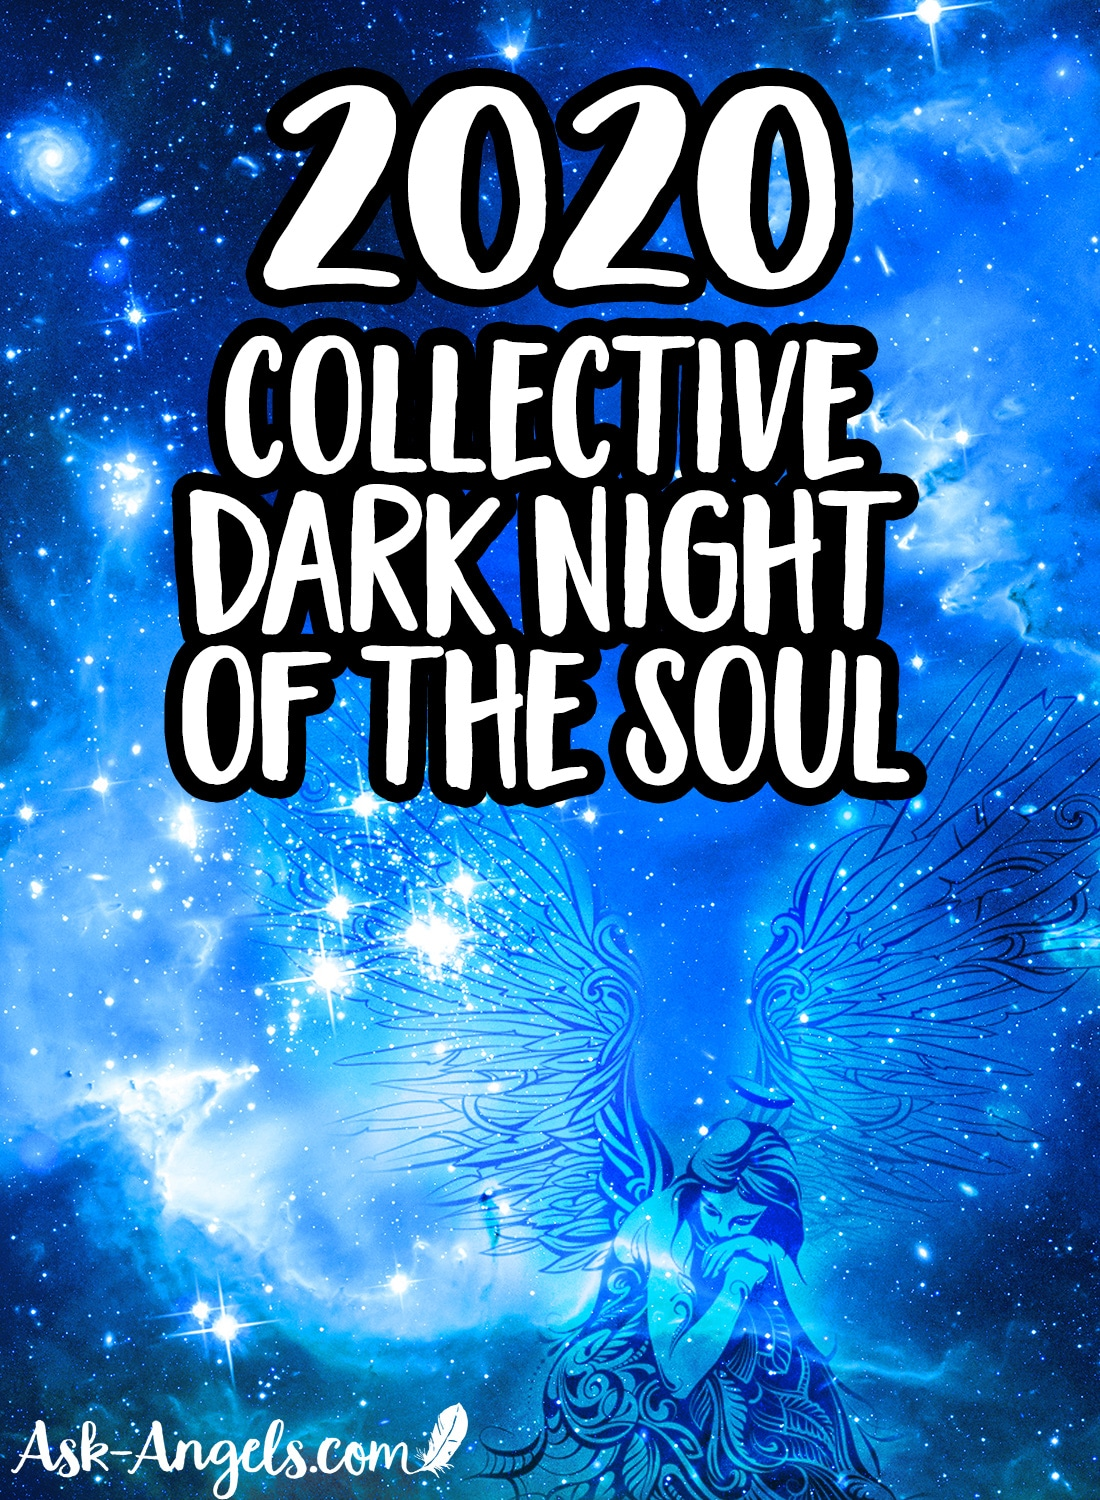 2020 - Collective Dark Night of the Soul